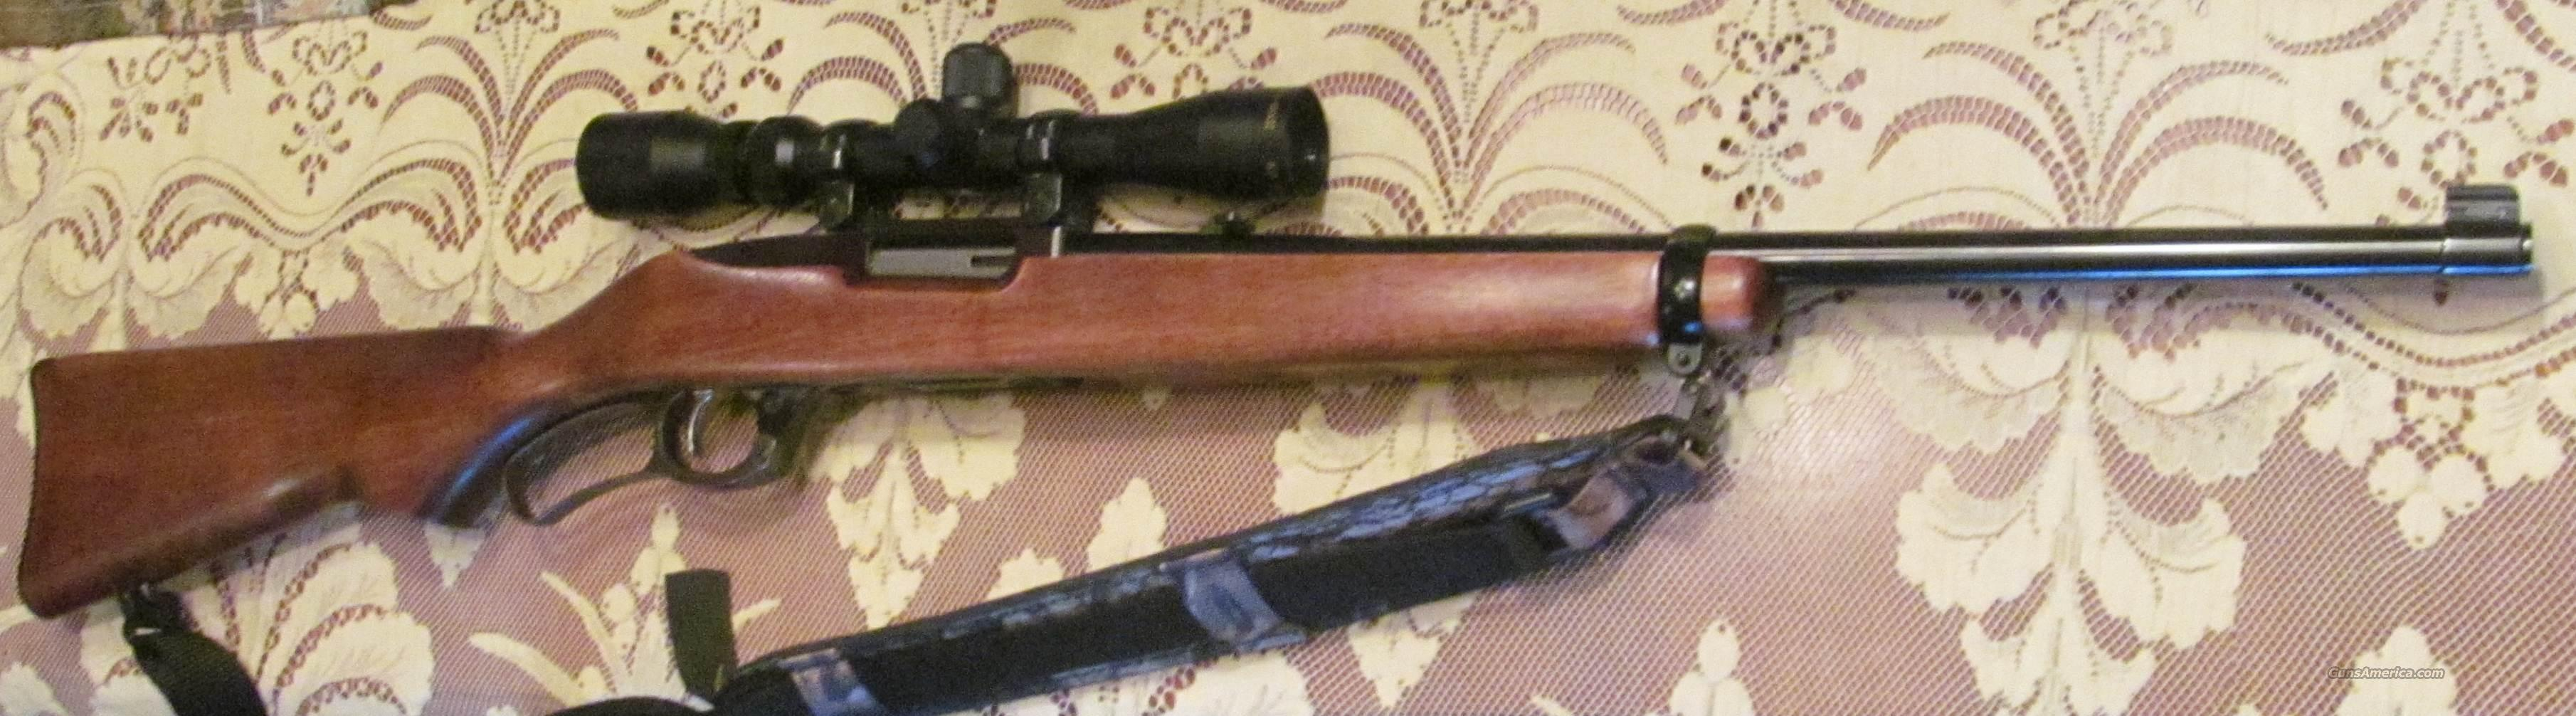 Ruger 96 44 Mag Lever Action Rifle w/ Scope Pristine  Guns > Rifles > Ruger Rifles > Lever Action